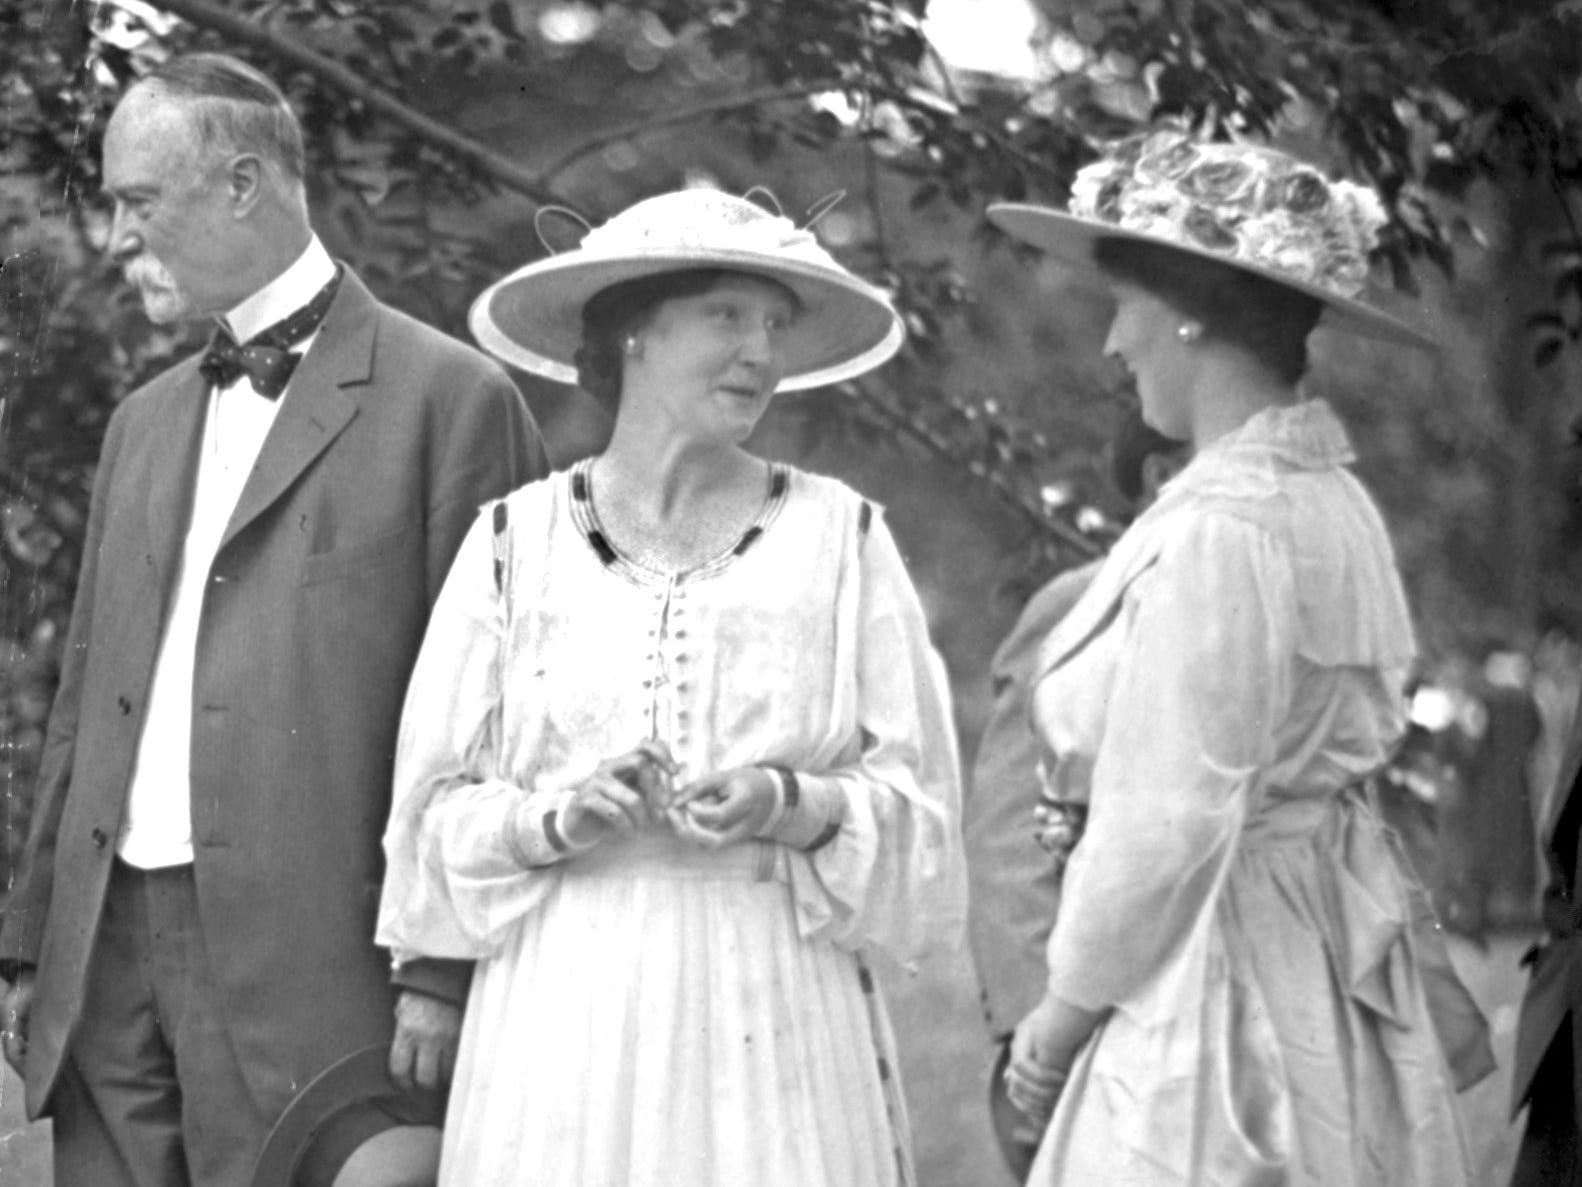 Charles Warren Fairbanks (left) stood in a receiving line along with his daughter, Mrs. John W. Timmons (center), and daughter-in-law, Mrs. Warren Fairbanks, on May 15, 1916 as they hosted a reception for 1,000 visitors. The occasion at the Fairbanks home at 1522 N. Meridian St. was the National Conference of Charities and Correction.